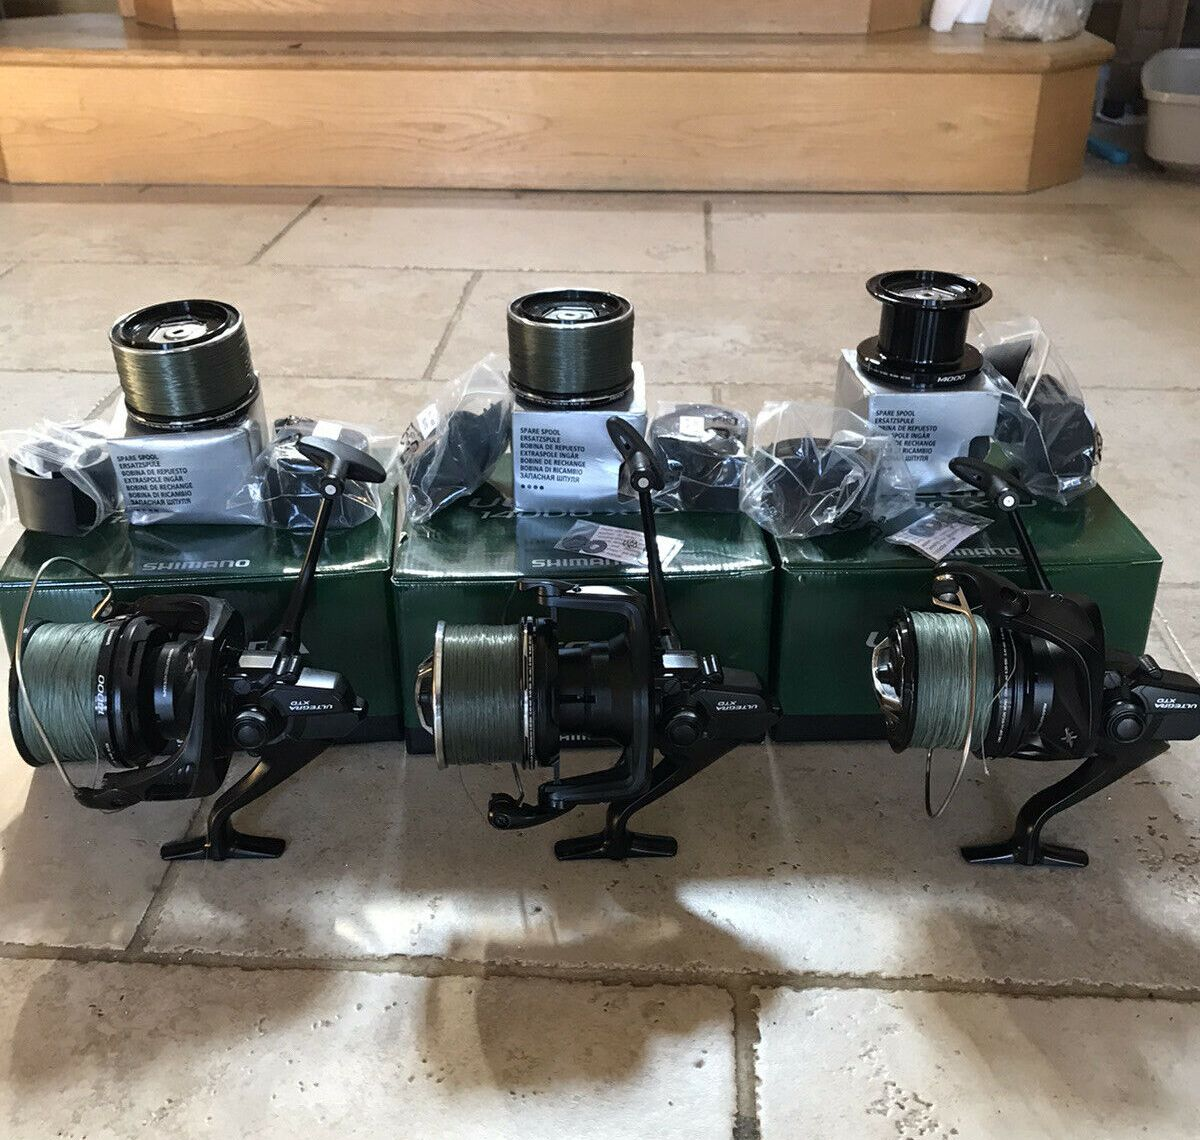 Ad - Shimano Ultegra 14000 XTD reel x3 On eBay here -->> https://t.co/2E4N2MOy5n  #carpfishing